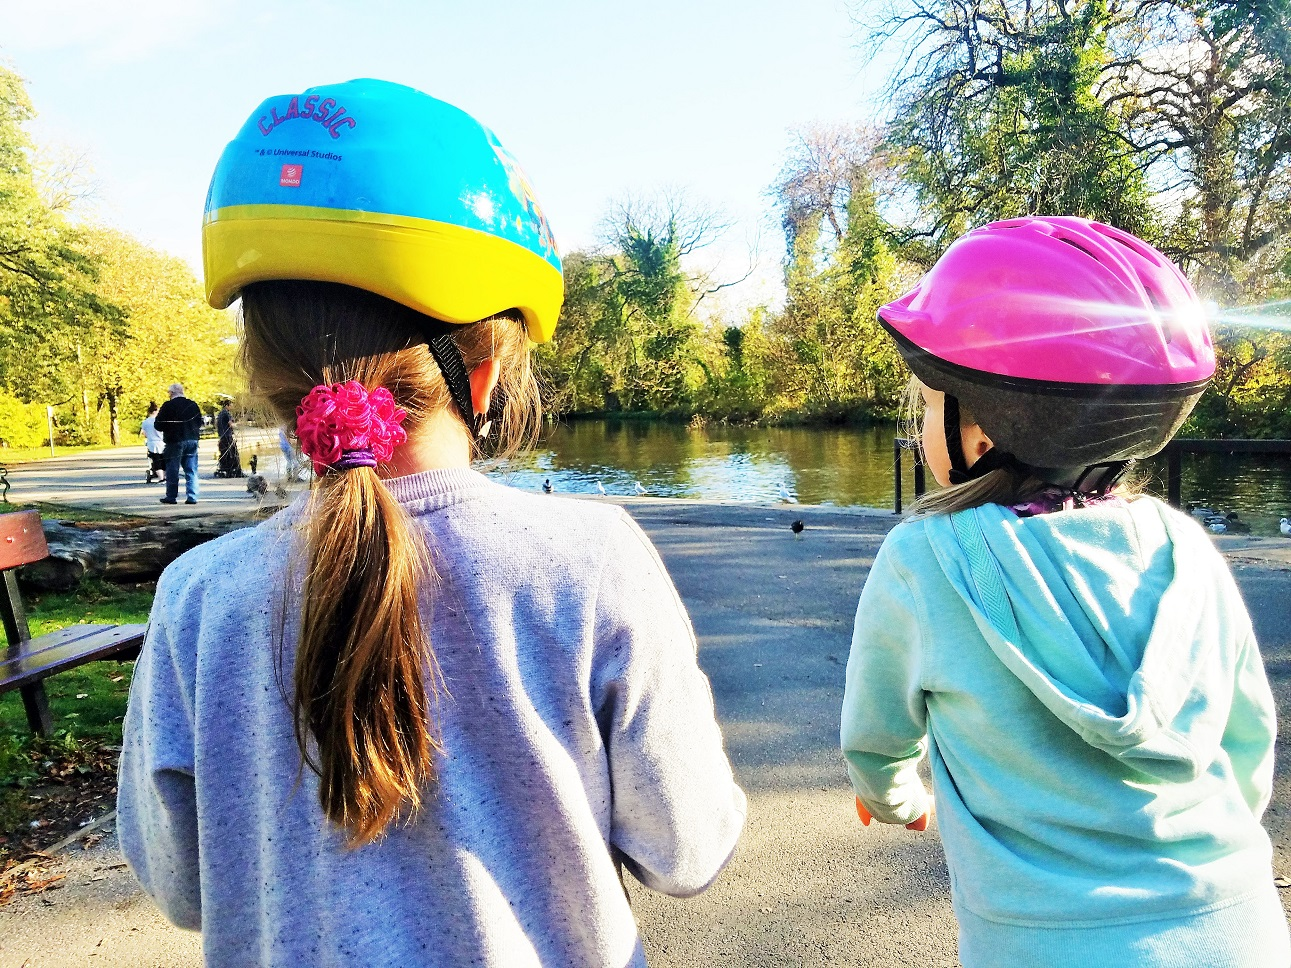 Hidden issues like sibling rivalry can cause behavioural issues - children in bike helmets